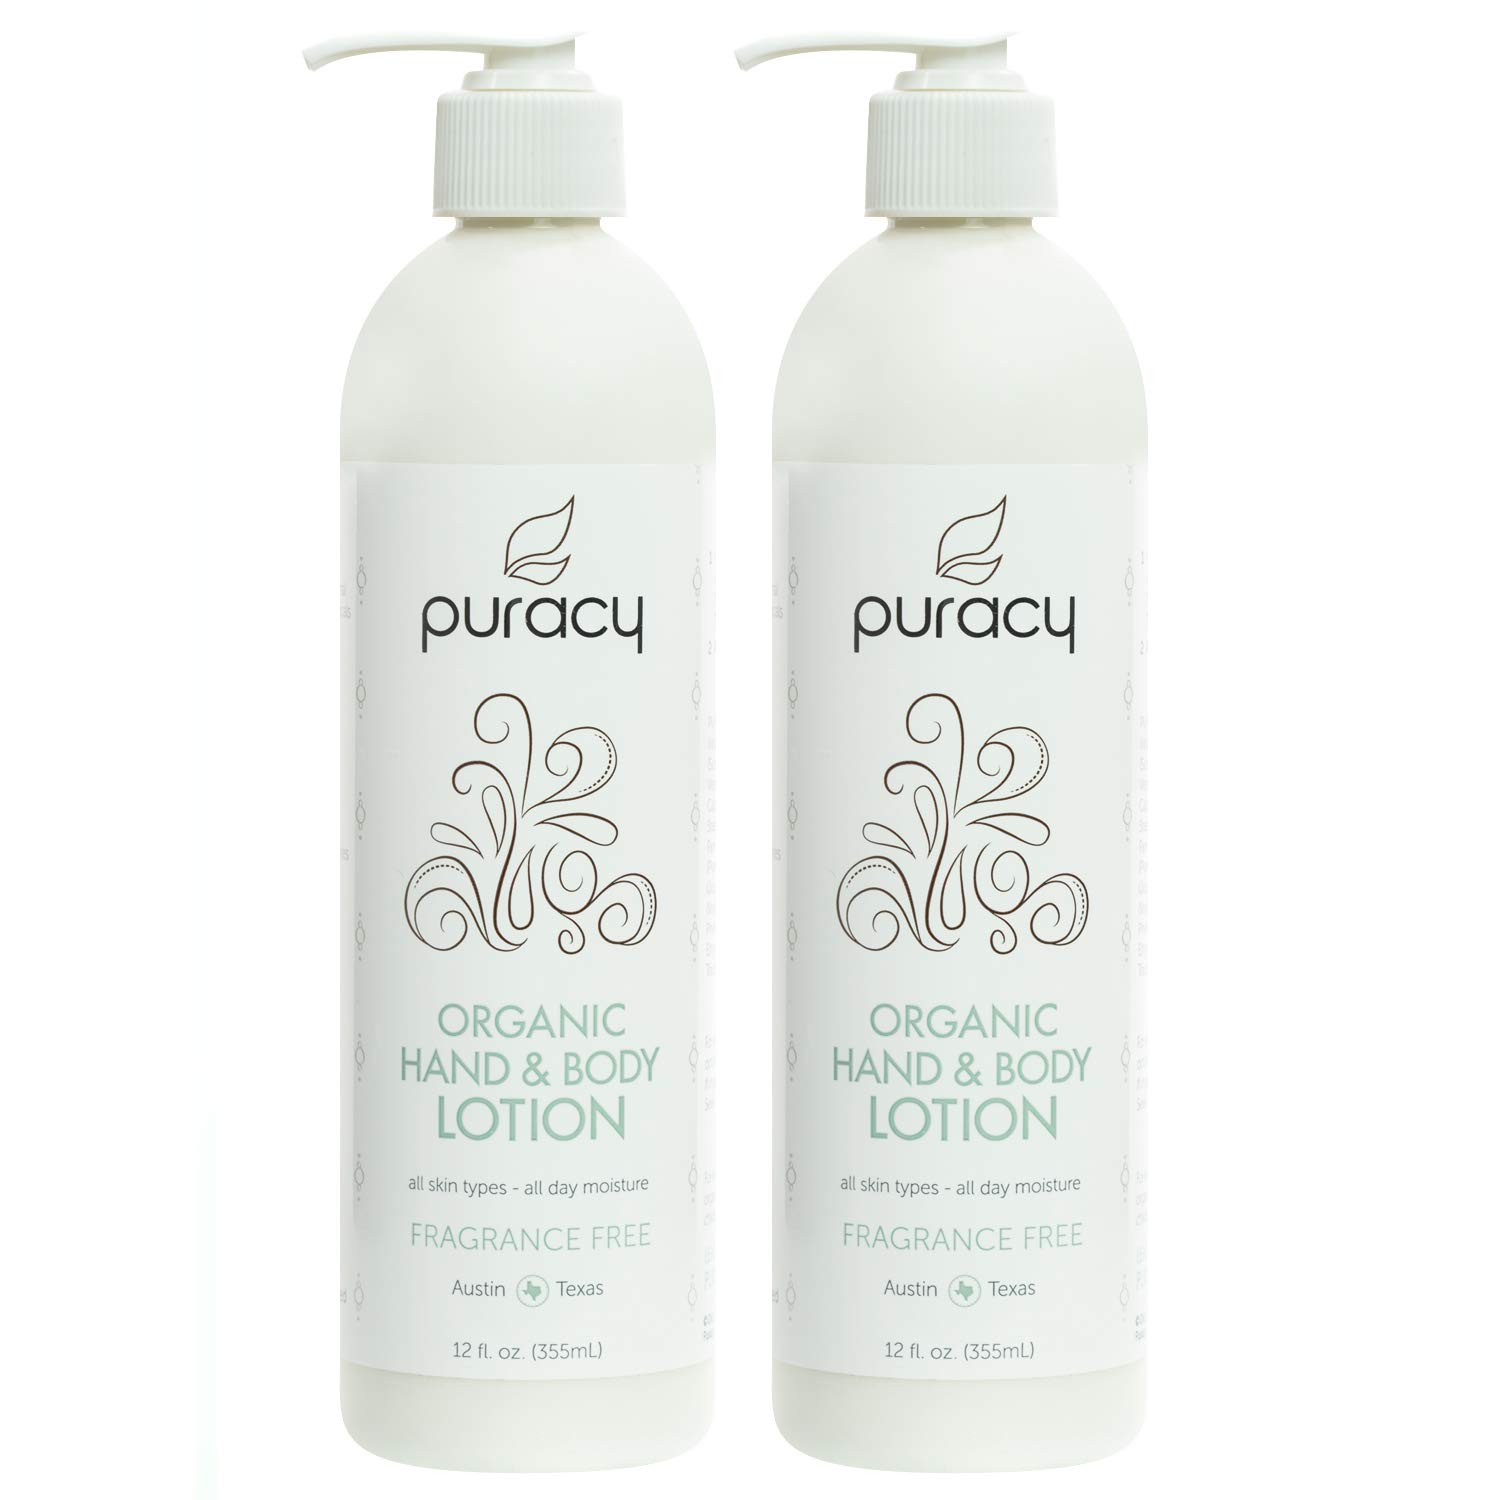 Puracy Organic Hand & Body Lotion, Fragrance Free Unscented Natural Moisturizer